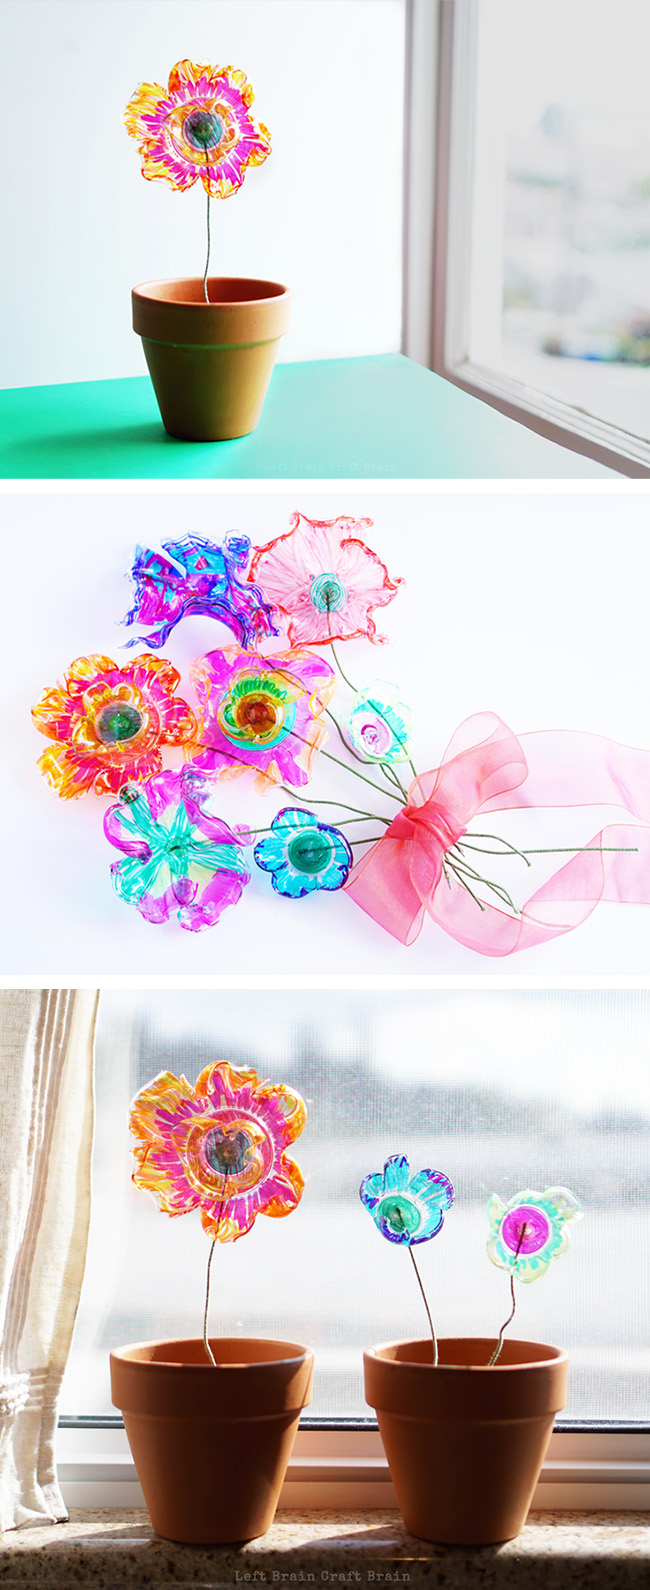 Recycled Plastic Flowers Art And Science Project Left Brain Craft Brain